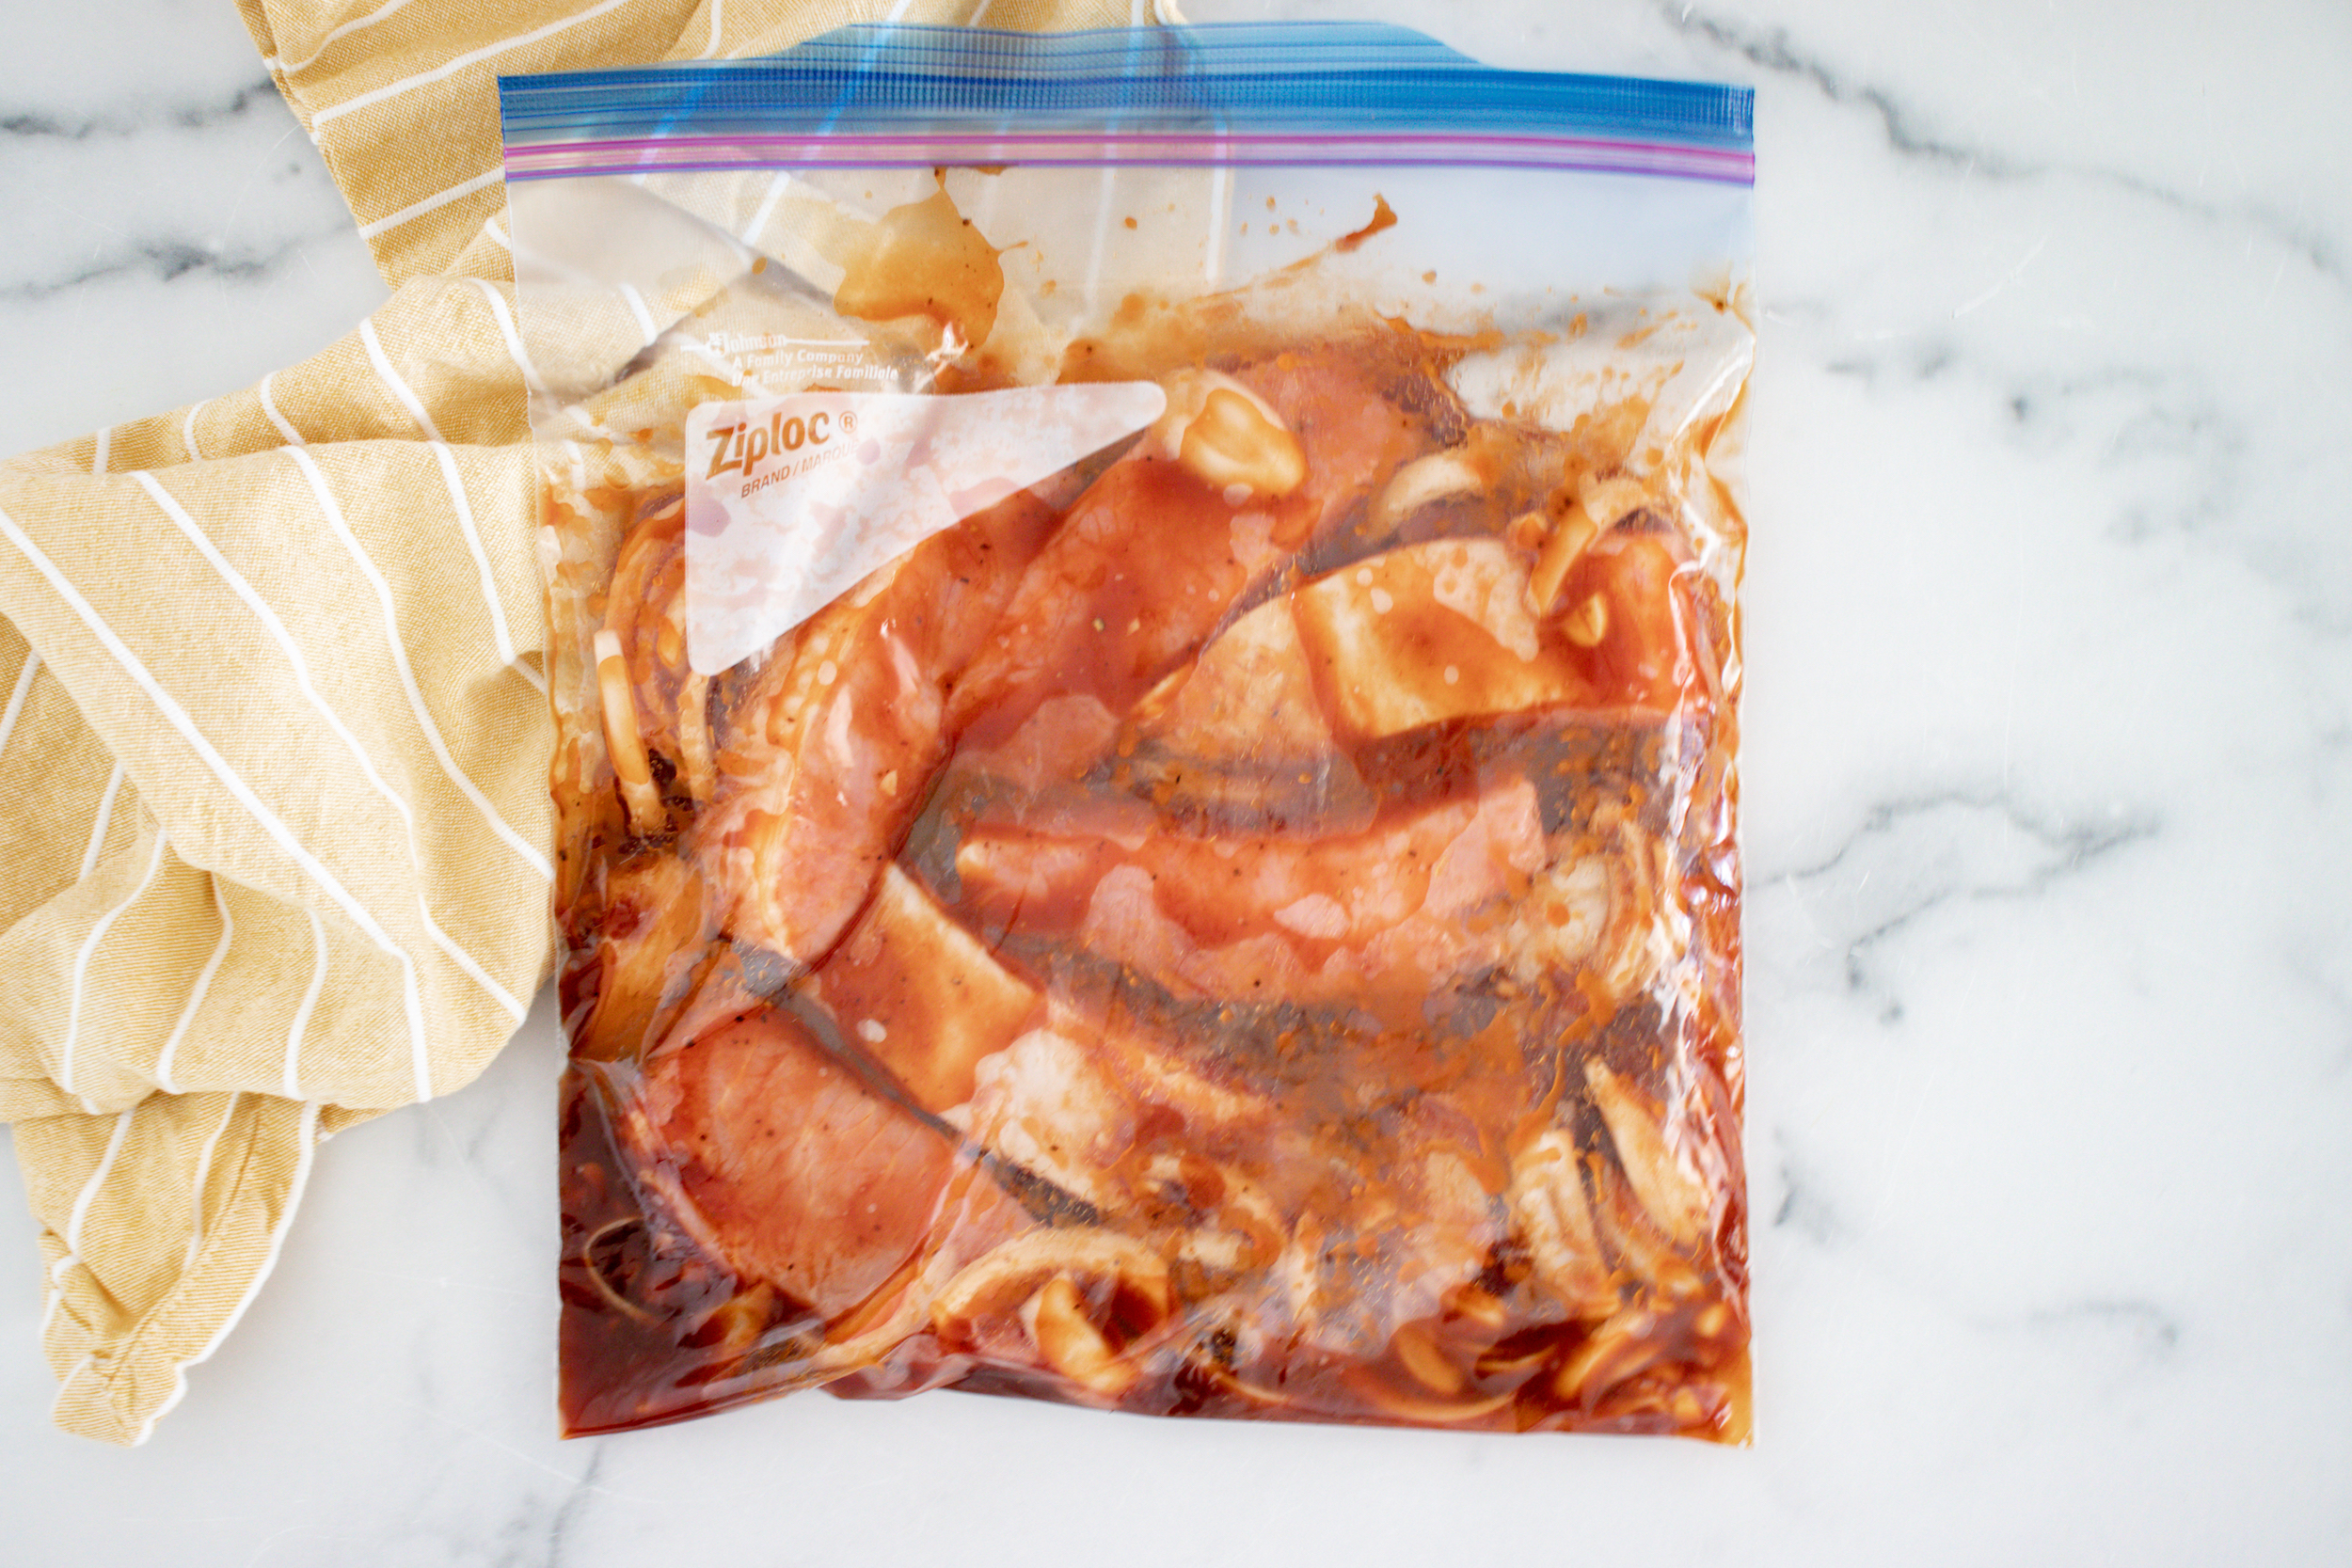 A gallon size resealable bag with uncooked ribs and sauce in it.